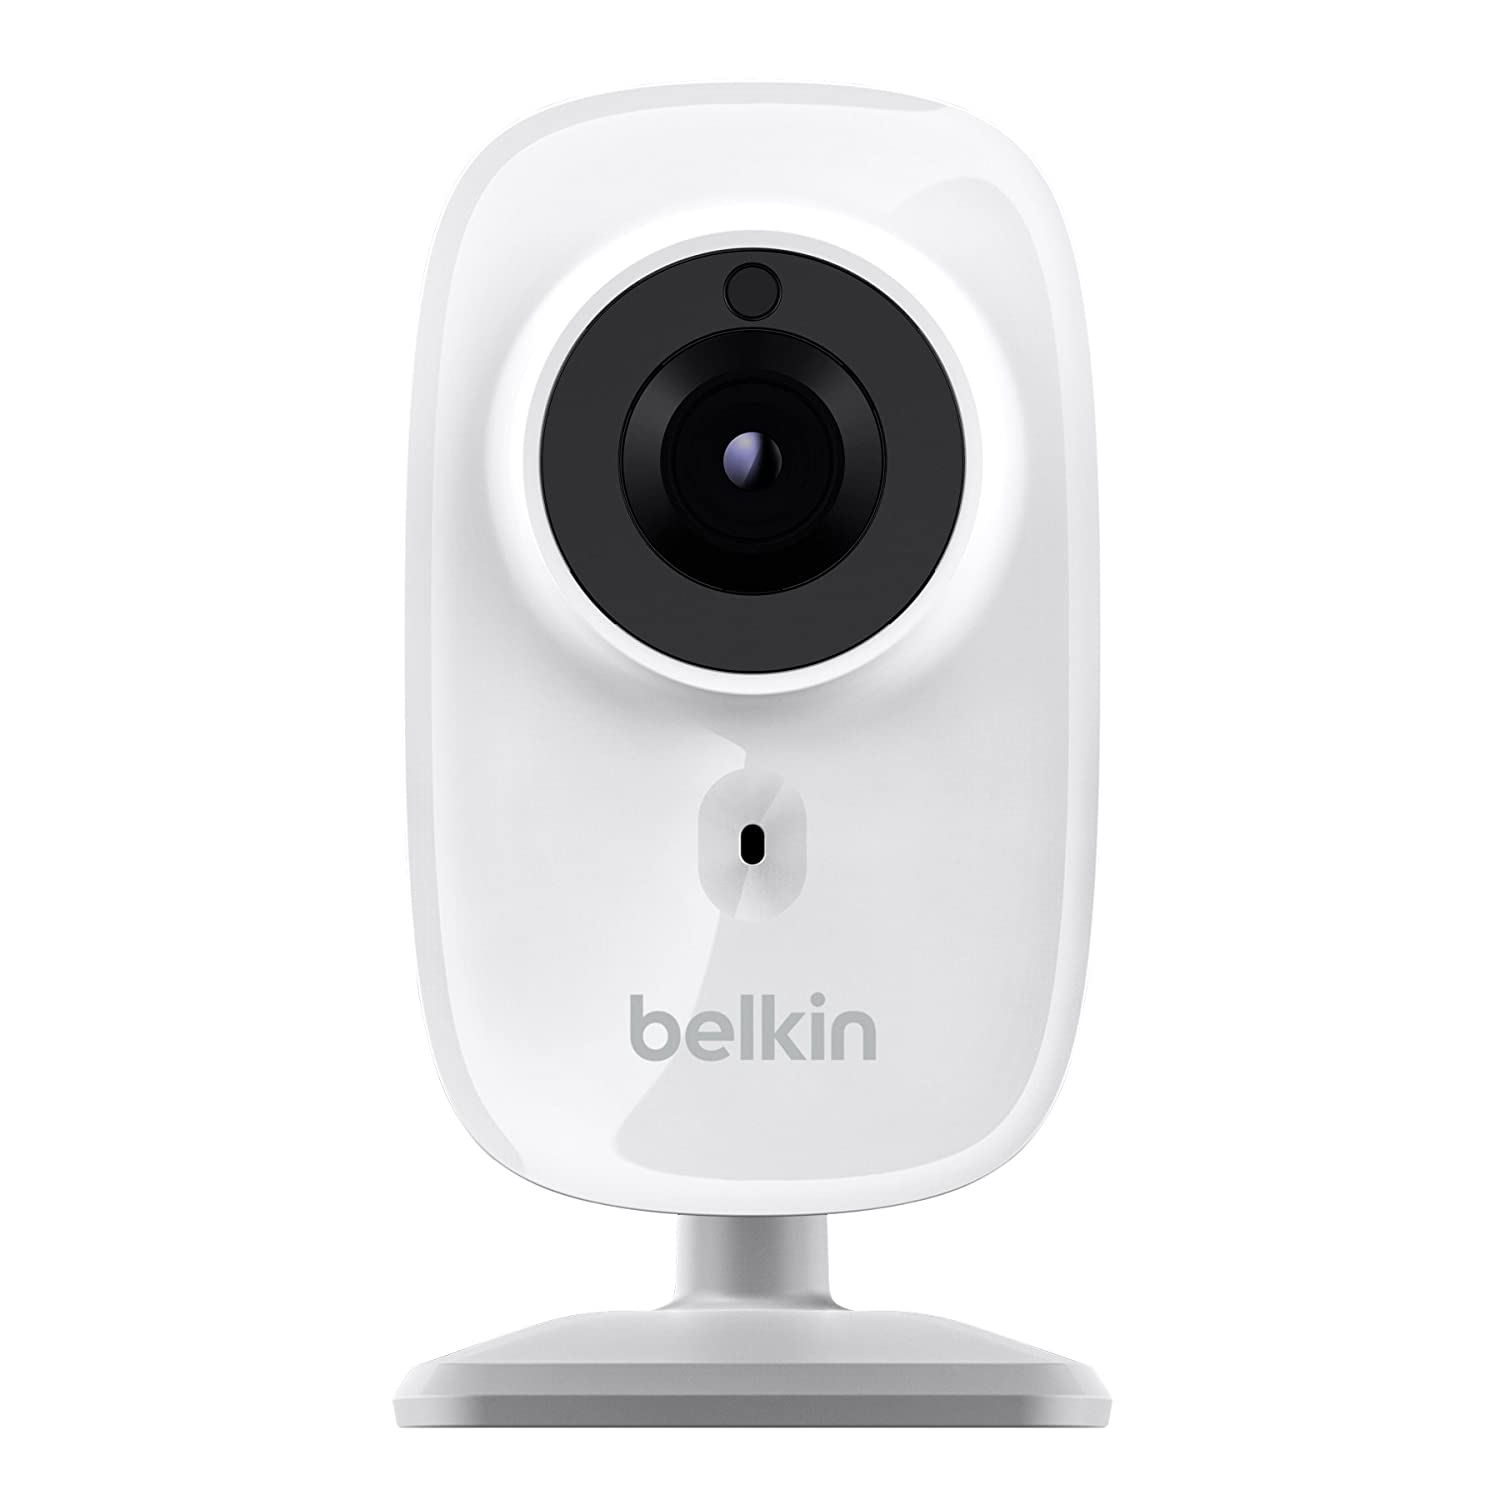 Belkin - Netcam HD - Camera IP WiFi à Vision Nocturne pour Tablette et Smartphone (IOS/Android) Belkin Components F7D7602as Caméra IP